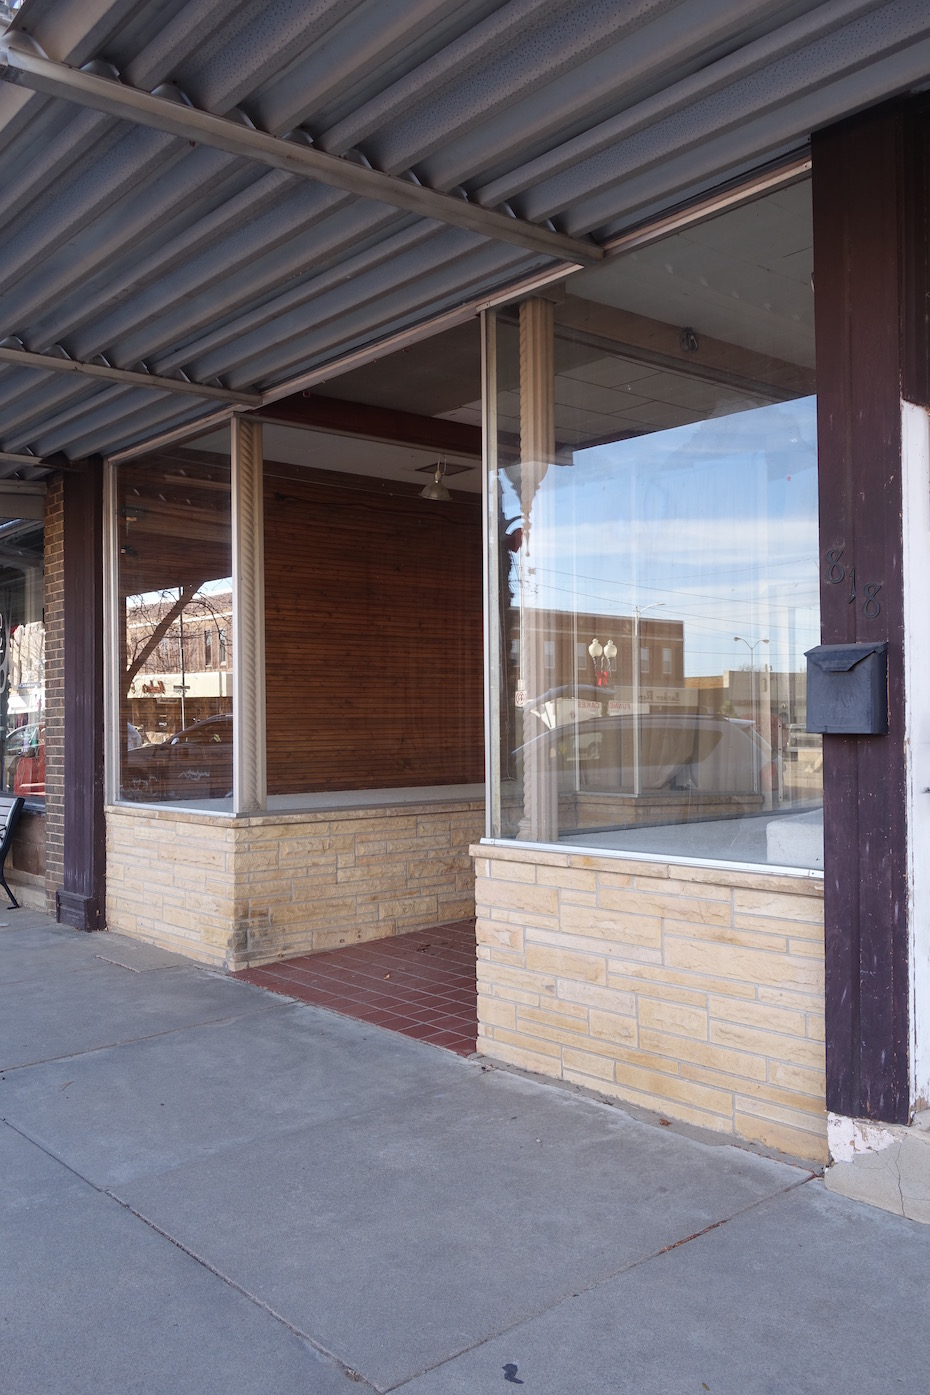 The plate glass display windows probably date to the 1950's.